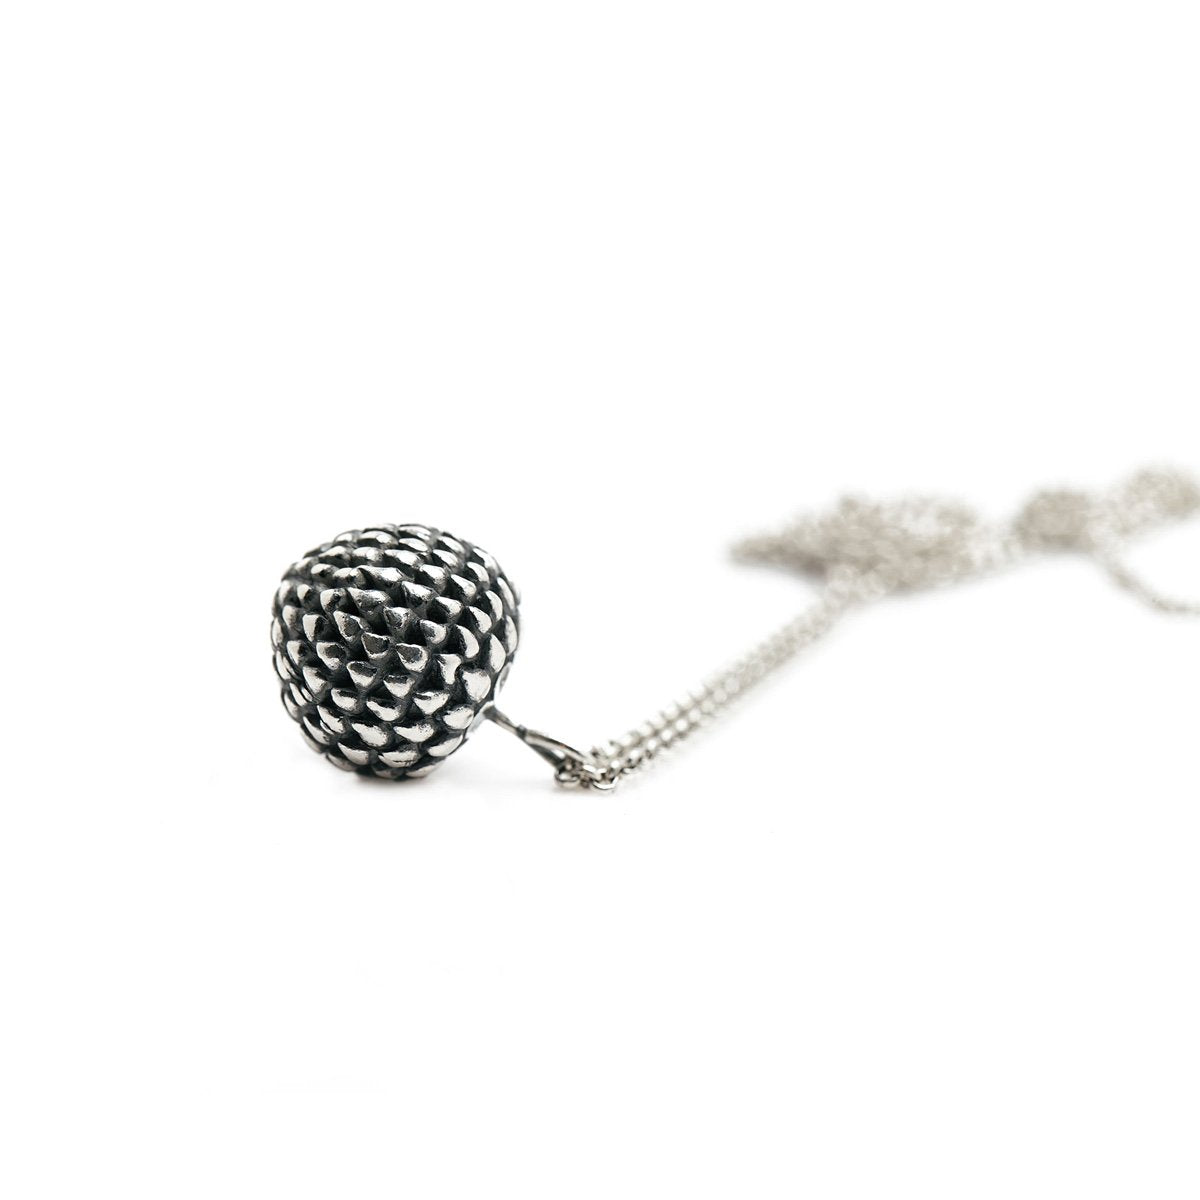 The chive flower necklace - oxidized Silver